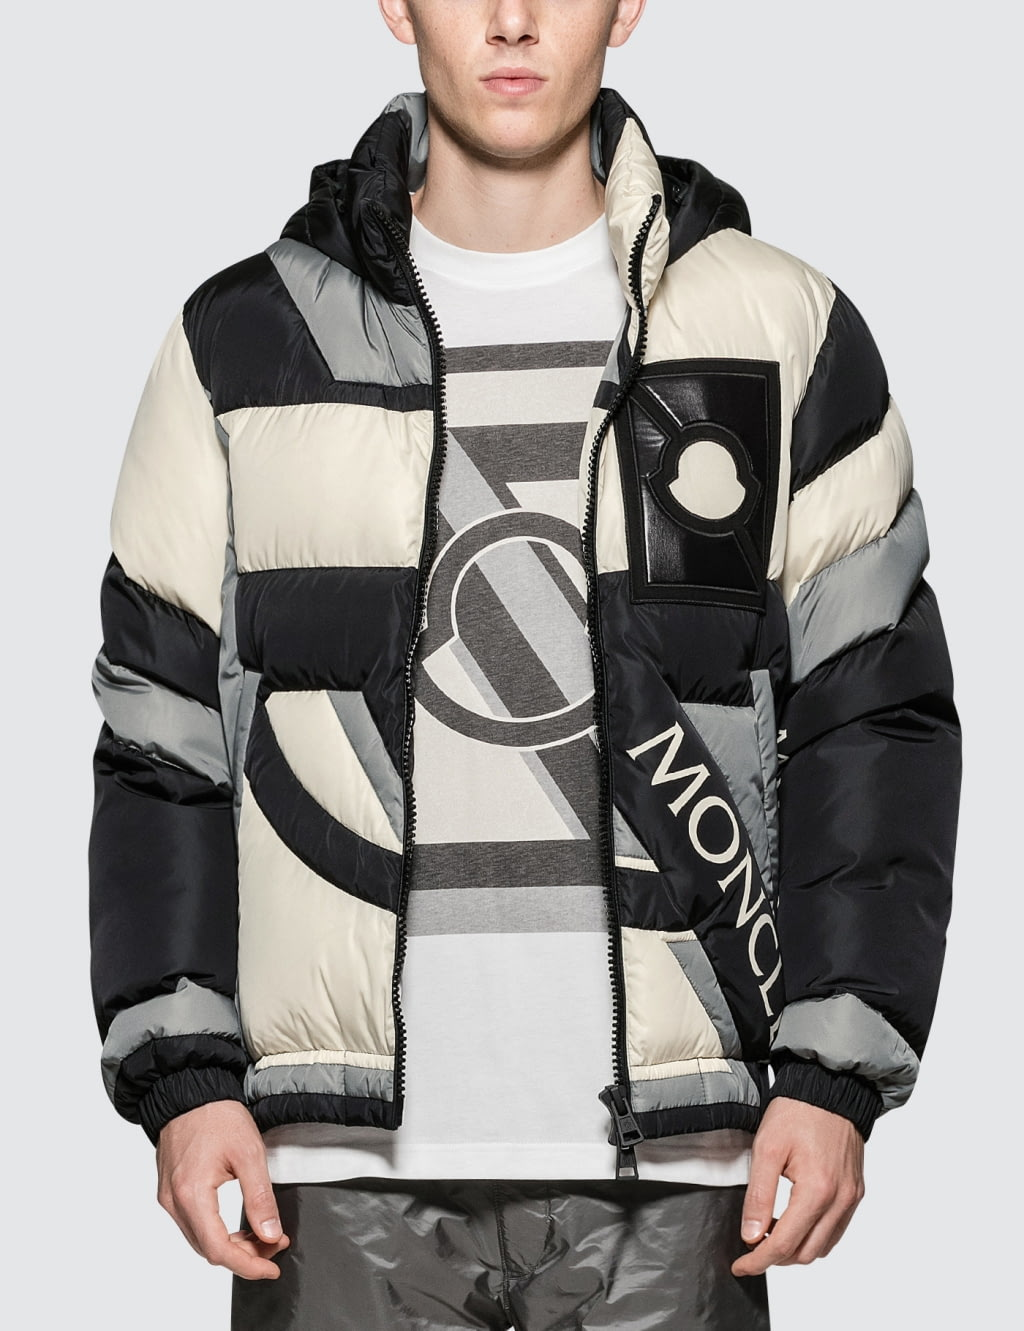 moncler x craig green price